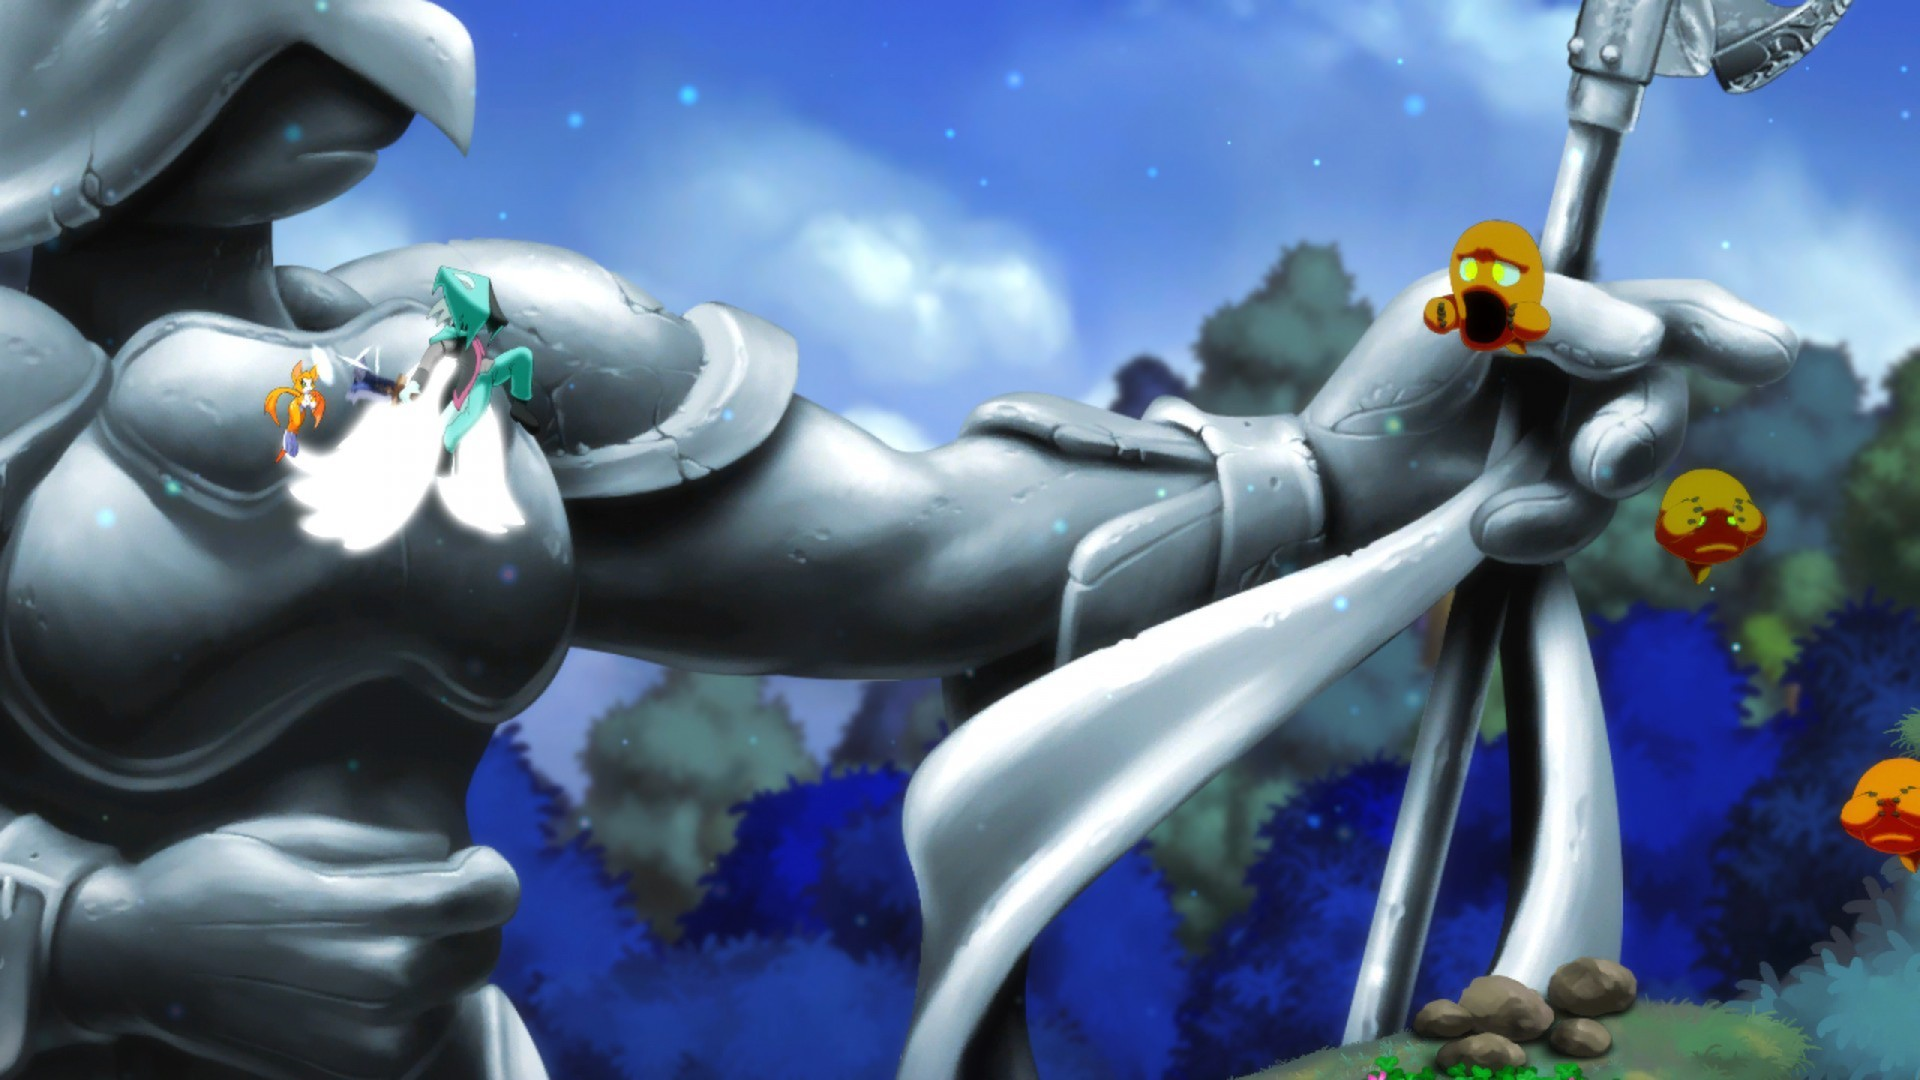 Buy Dust: An Elysian Tail – DownloadDust: An Elysian Tail – Download